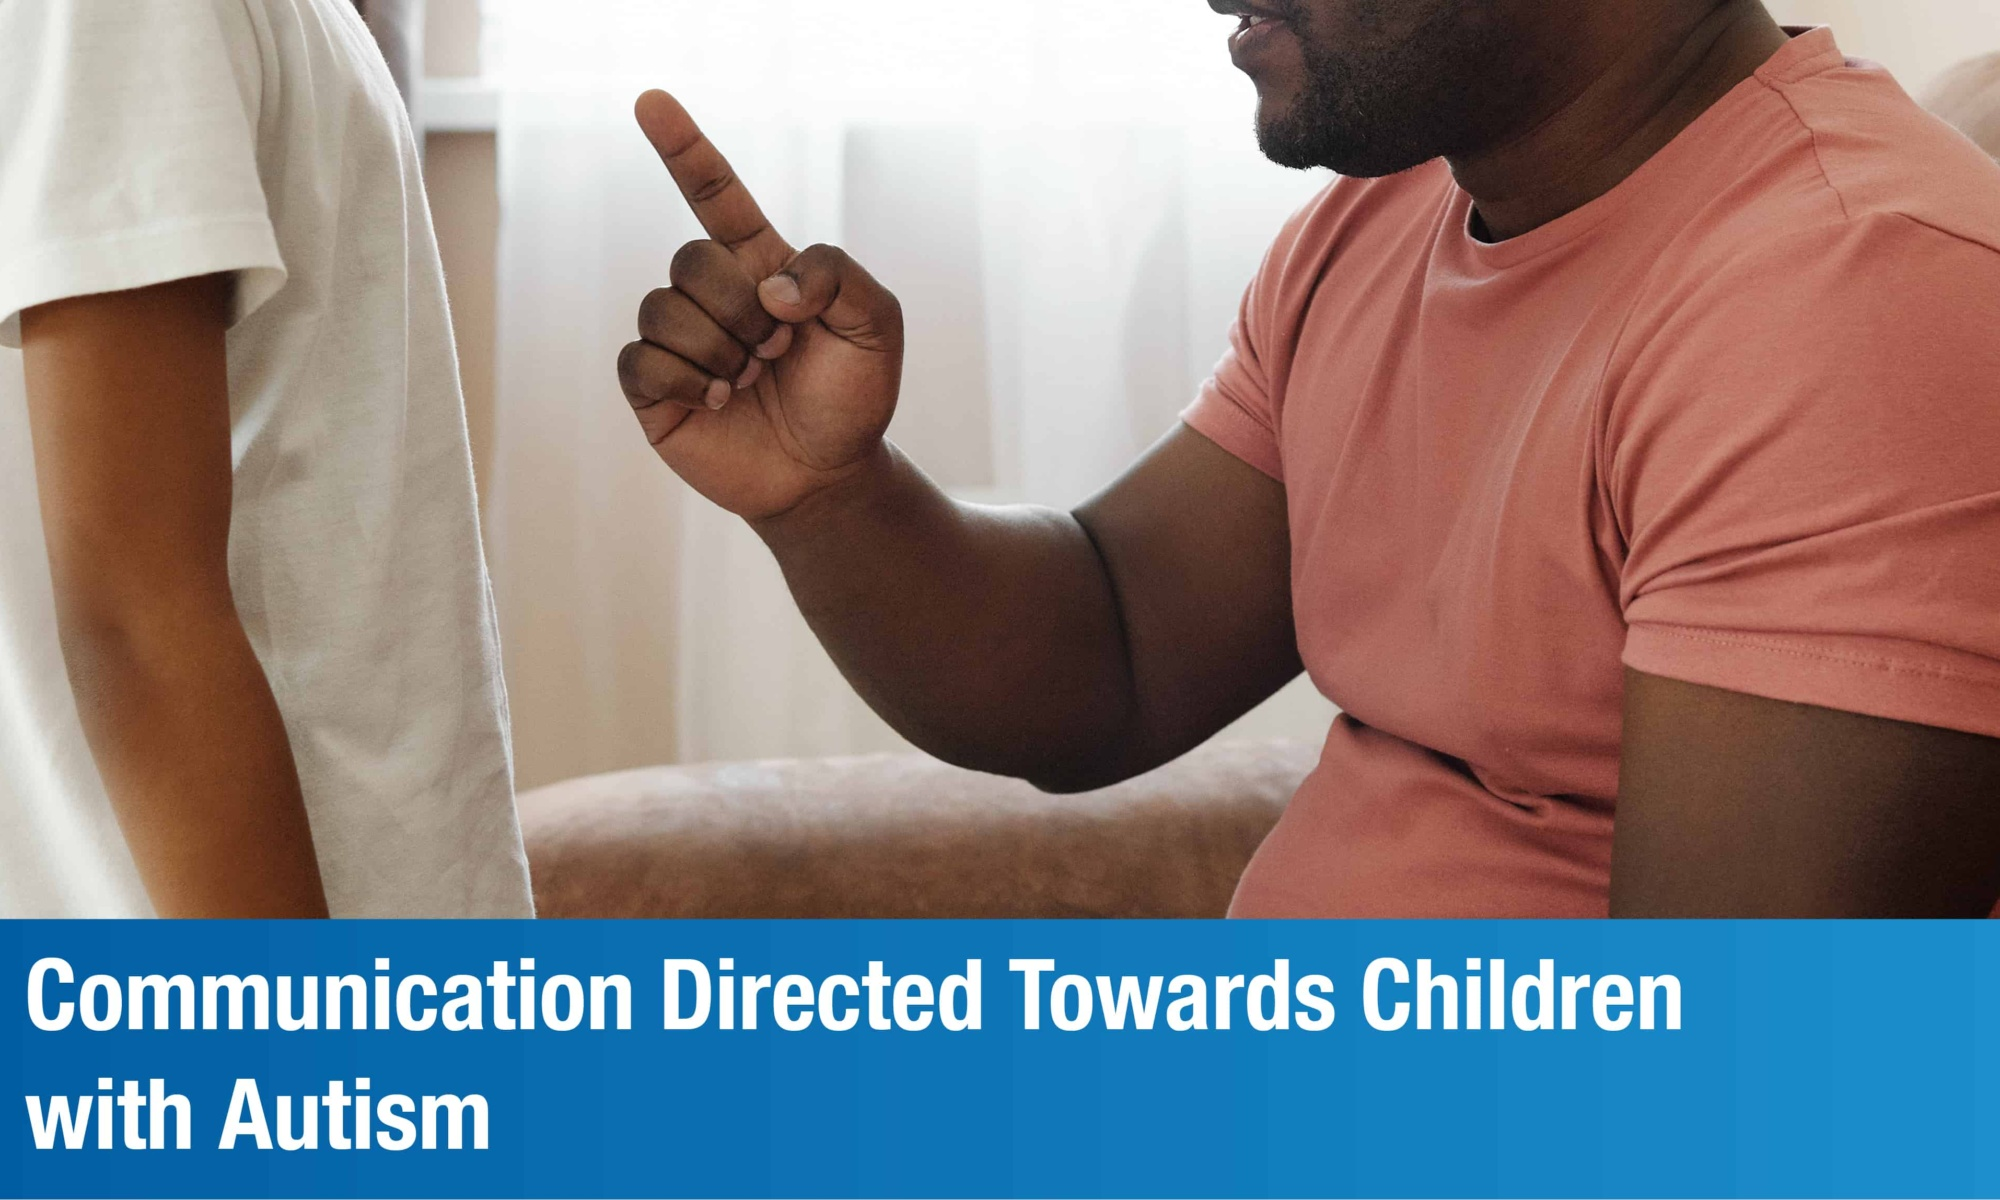 Communication Directed Towards Children with Autism